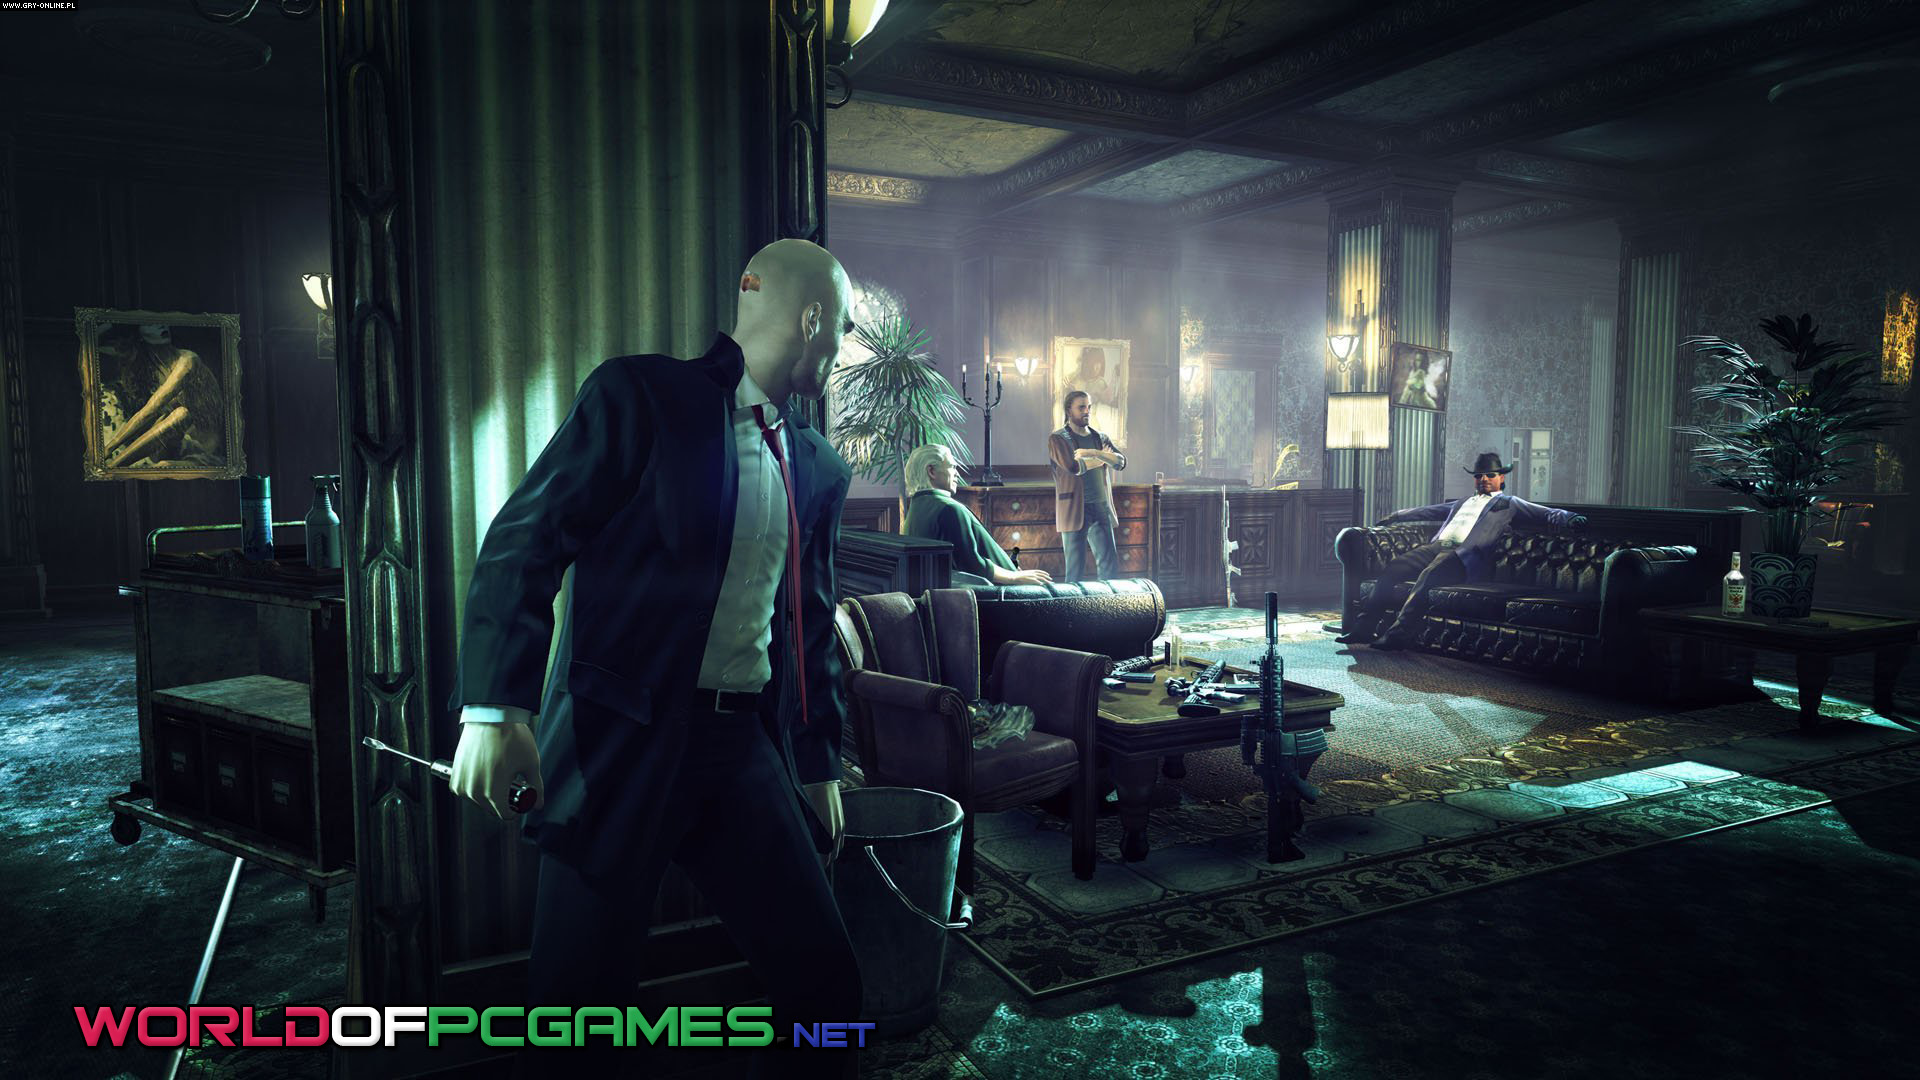 hitman 6 download highly compressed